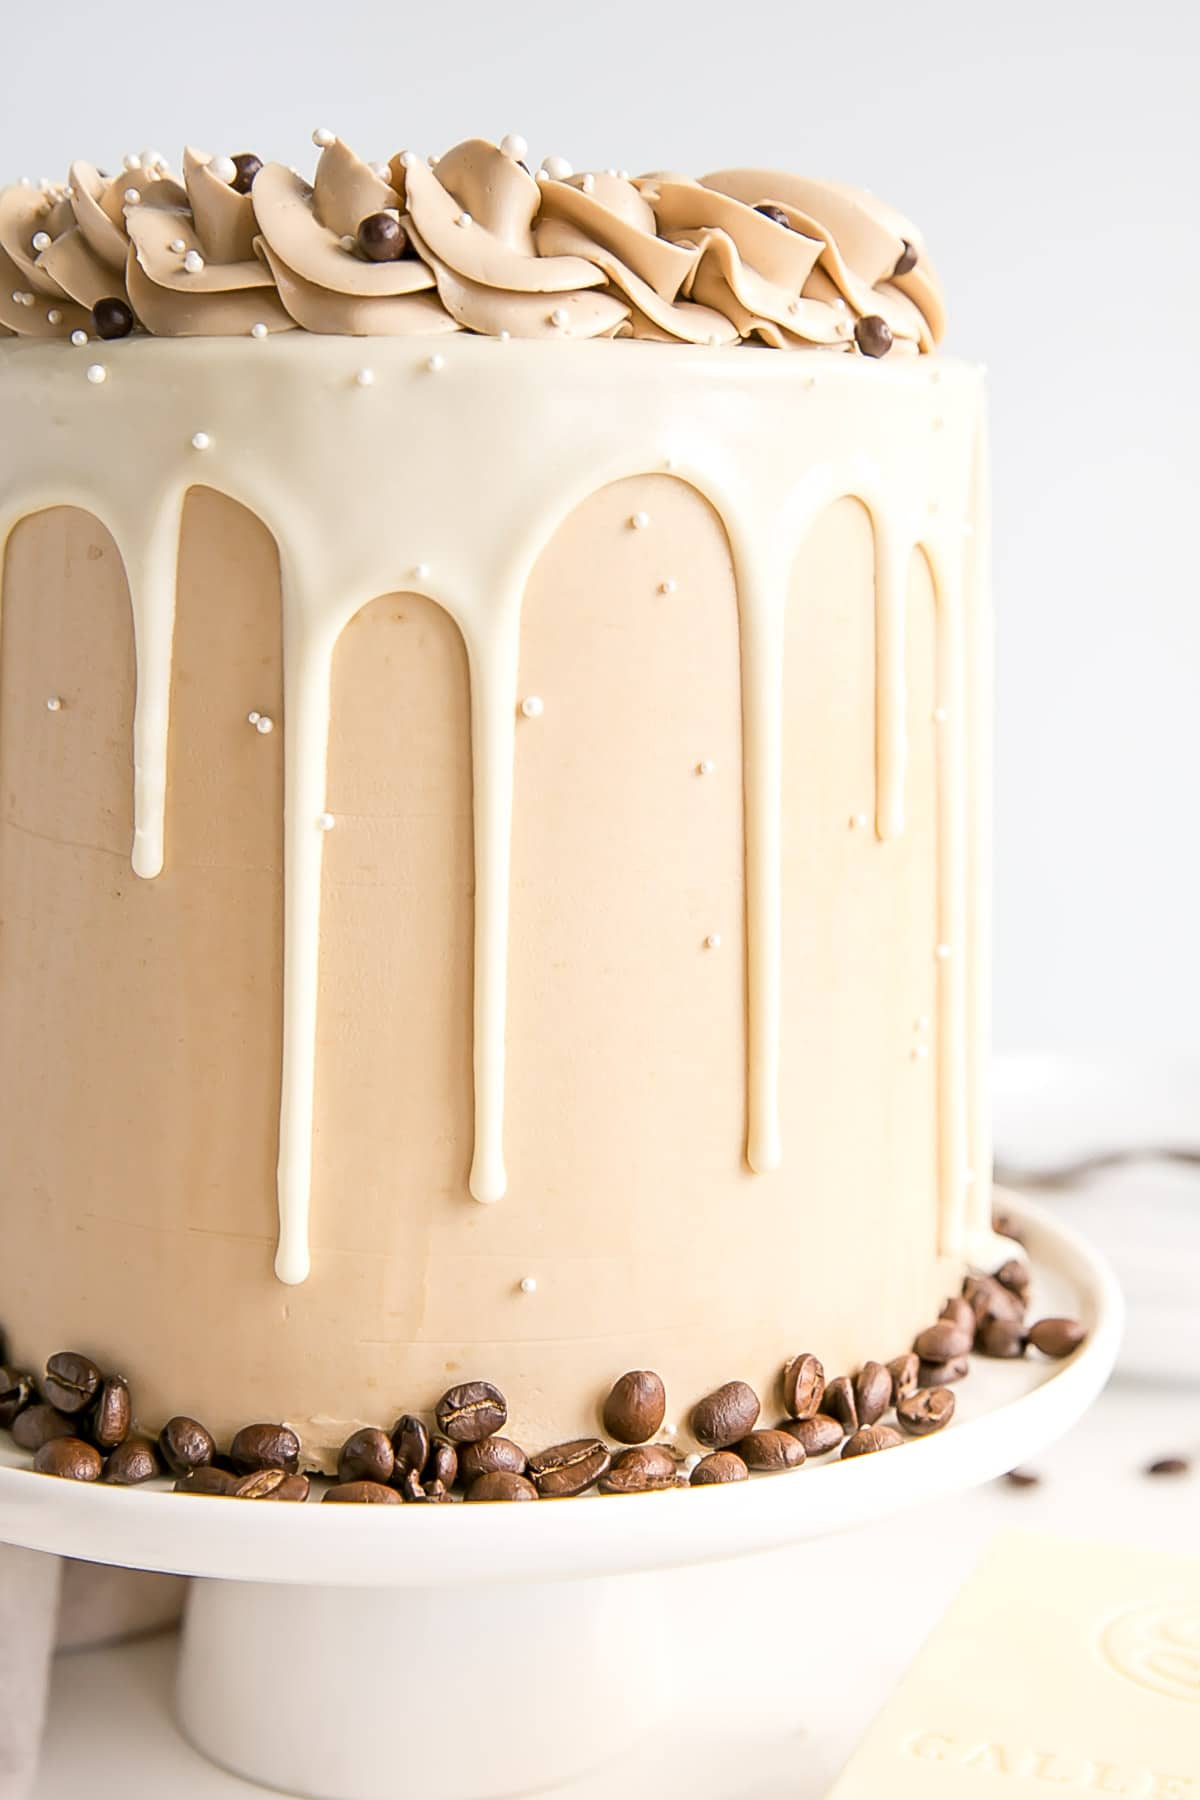 Close up of the side of the cake showing the frosting and the white chocolate ganache drip.